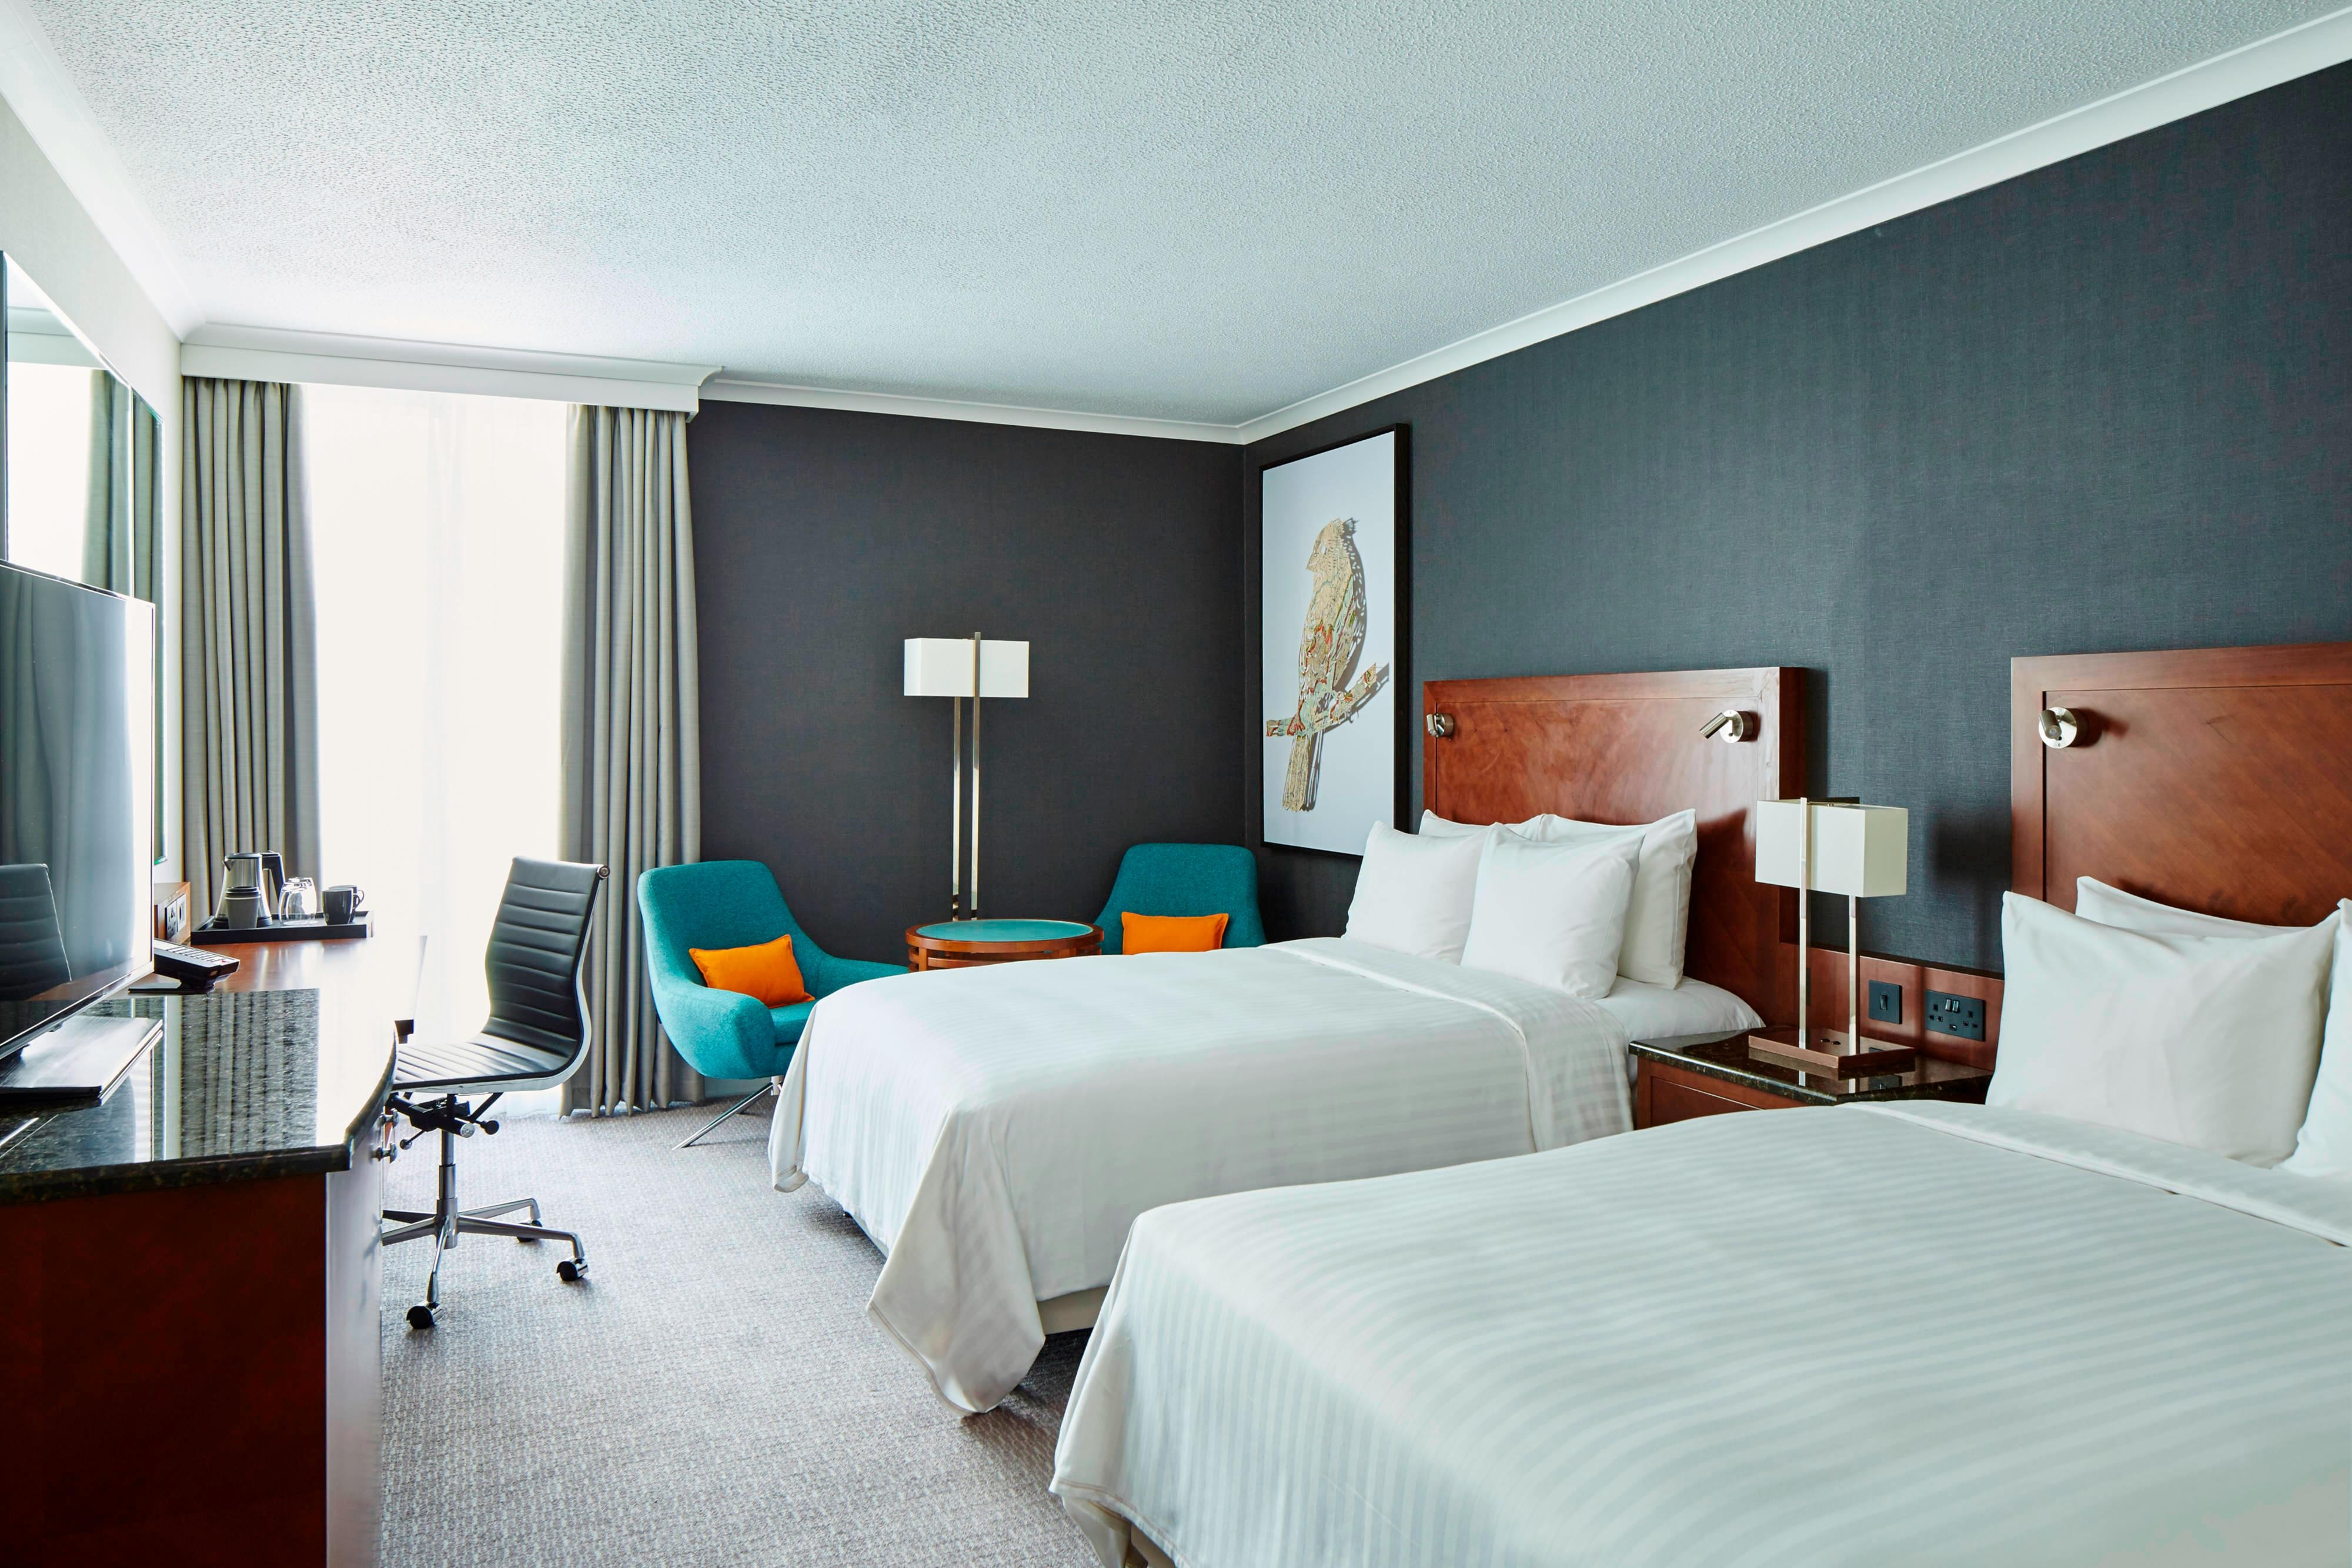 Day Rooms Hotels Heathrow Airport